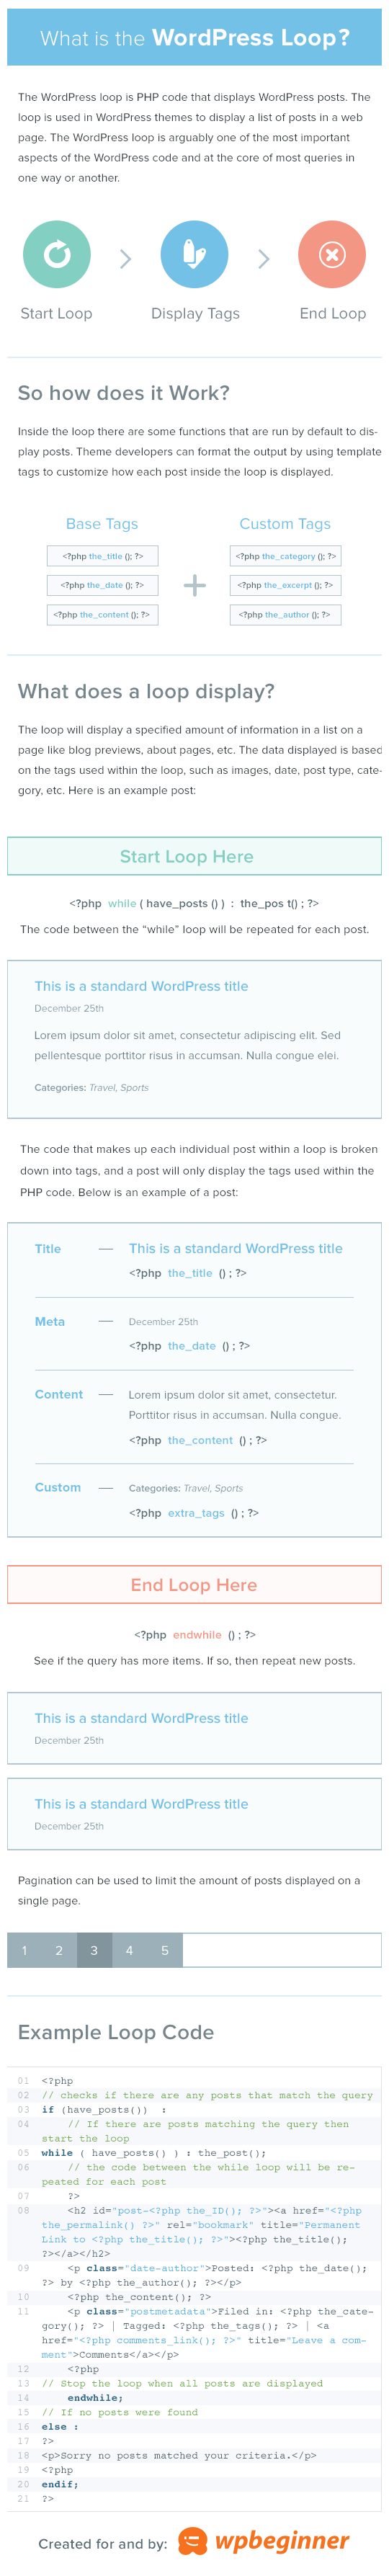 Infographic - Understanding the WordPress Loop